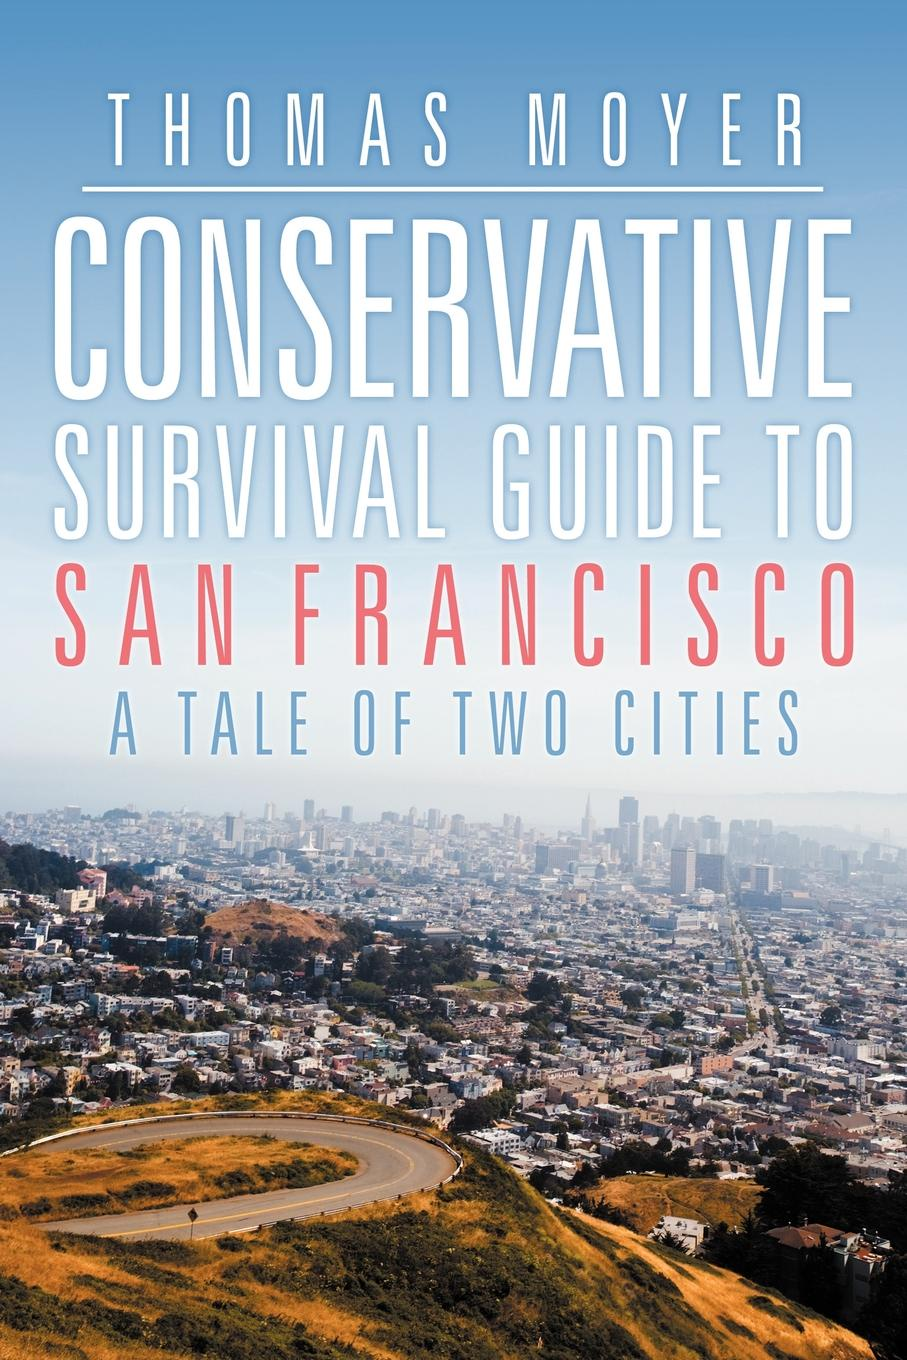 Thomas Moyer Conservative Survival Guide to San Francisco. A Tale of Two Cities купить недорого в Москве